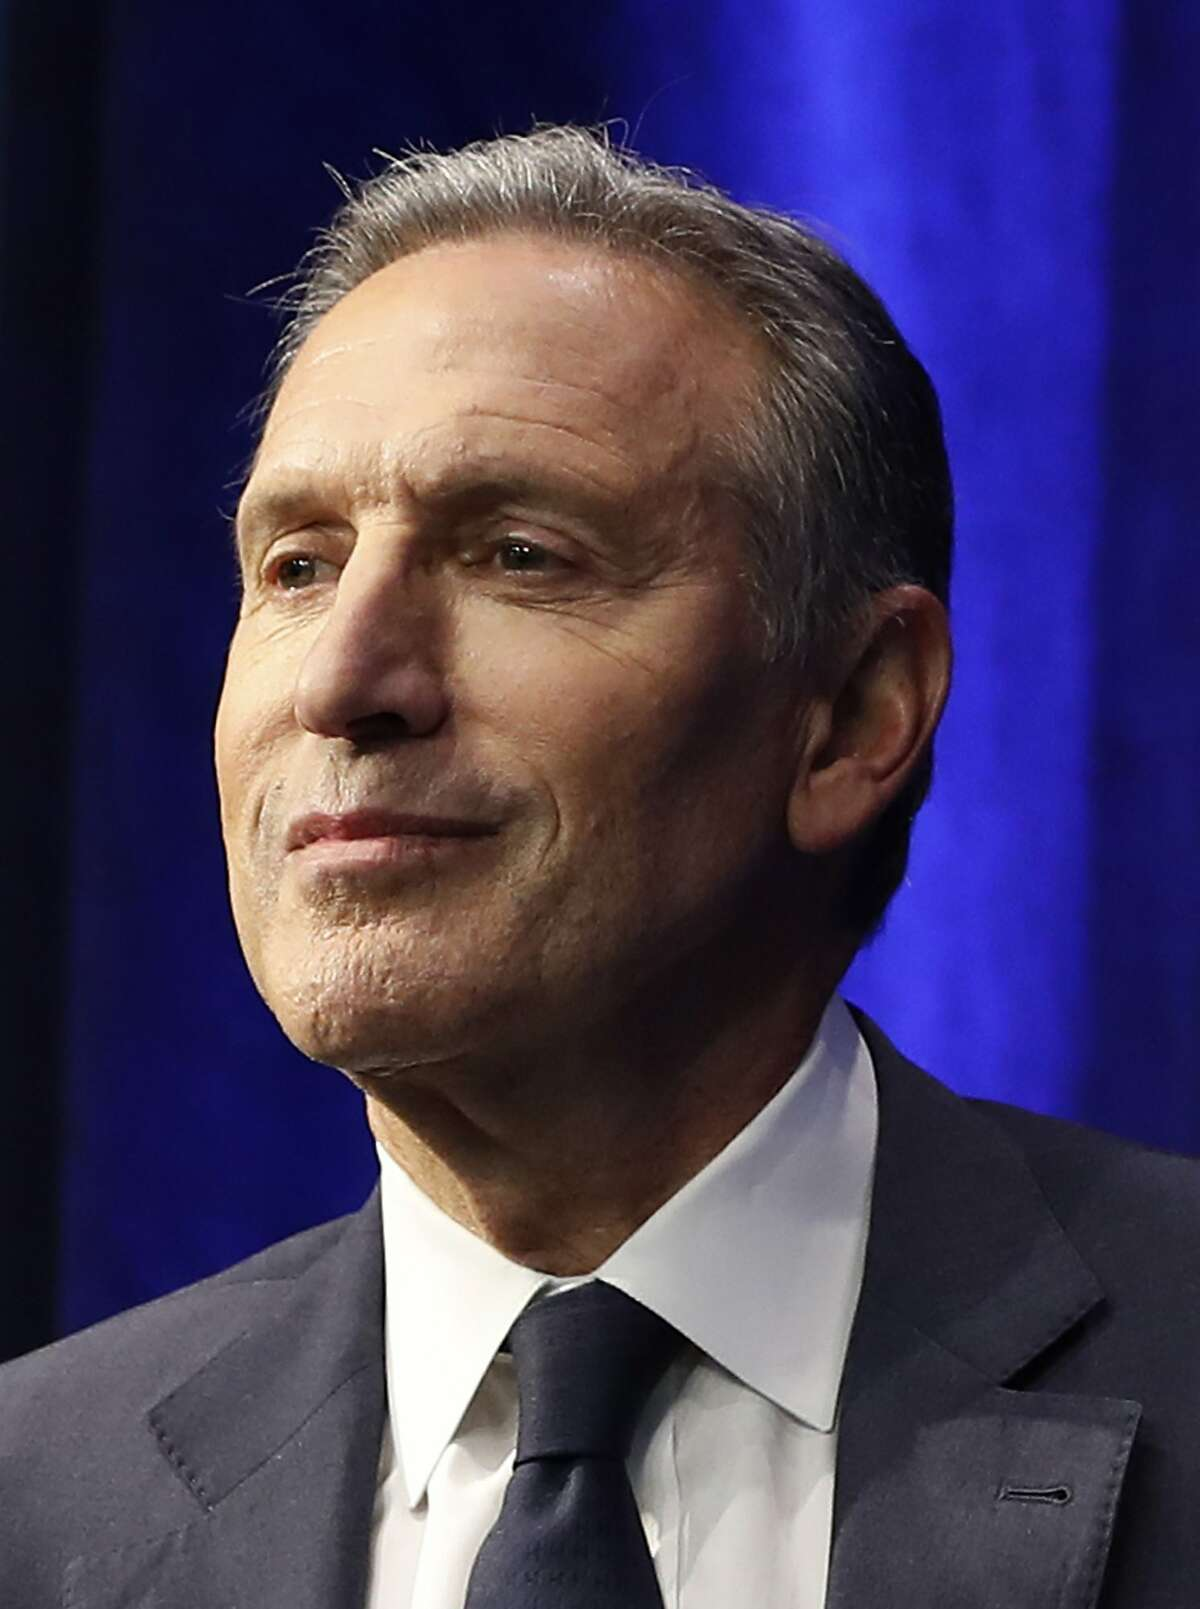 Former Starbucks CEO and Chairman Howard Schultz during looks out at the audience during the kickoff event for his book promotion tour, Monday, Jan. 28, 2019, in New York. Democrats across the political spectrum lashed out at the billionaire businessman on Monday after he teased the prospect of an independent 2020 bid, a move Democrats fear would split their vote and all but ensure President Donald Trump's re-election. (AP Photo/Kathy Willens)